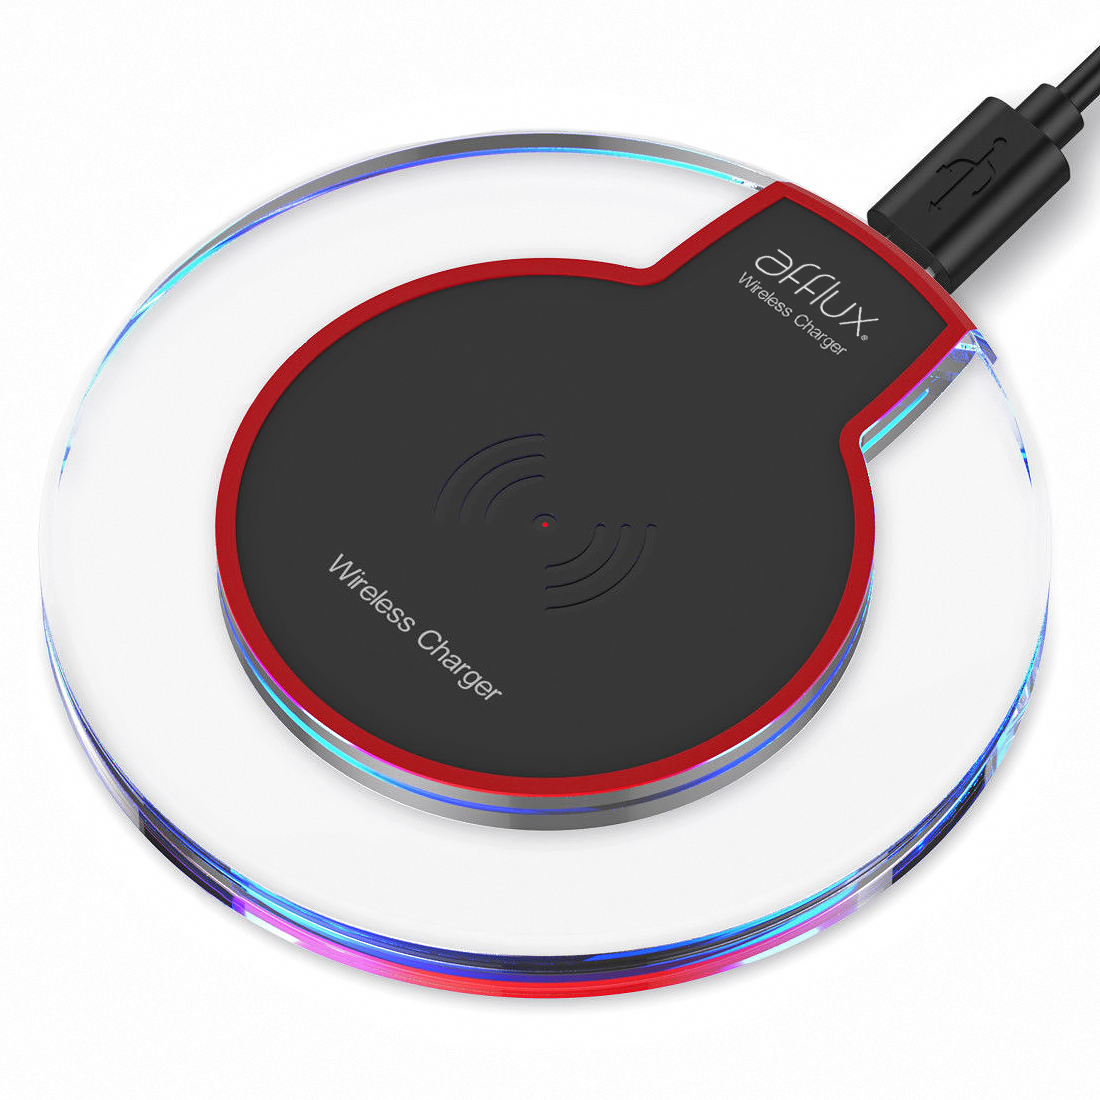 Qi Wireless Charging Pad Slim Charger Dock For Apple iPhone X iPhone 8 Plus Samsung Galaxy S8 S9+ Galaxy S6 S7 Edge Plus Note 9 8 5 Xperia XZ3 LG G7 ThinQ and all Qi-Enabled Devices